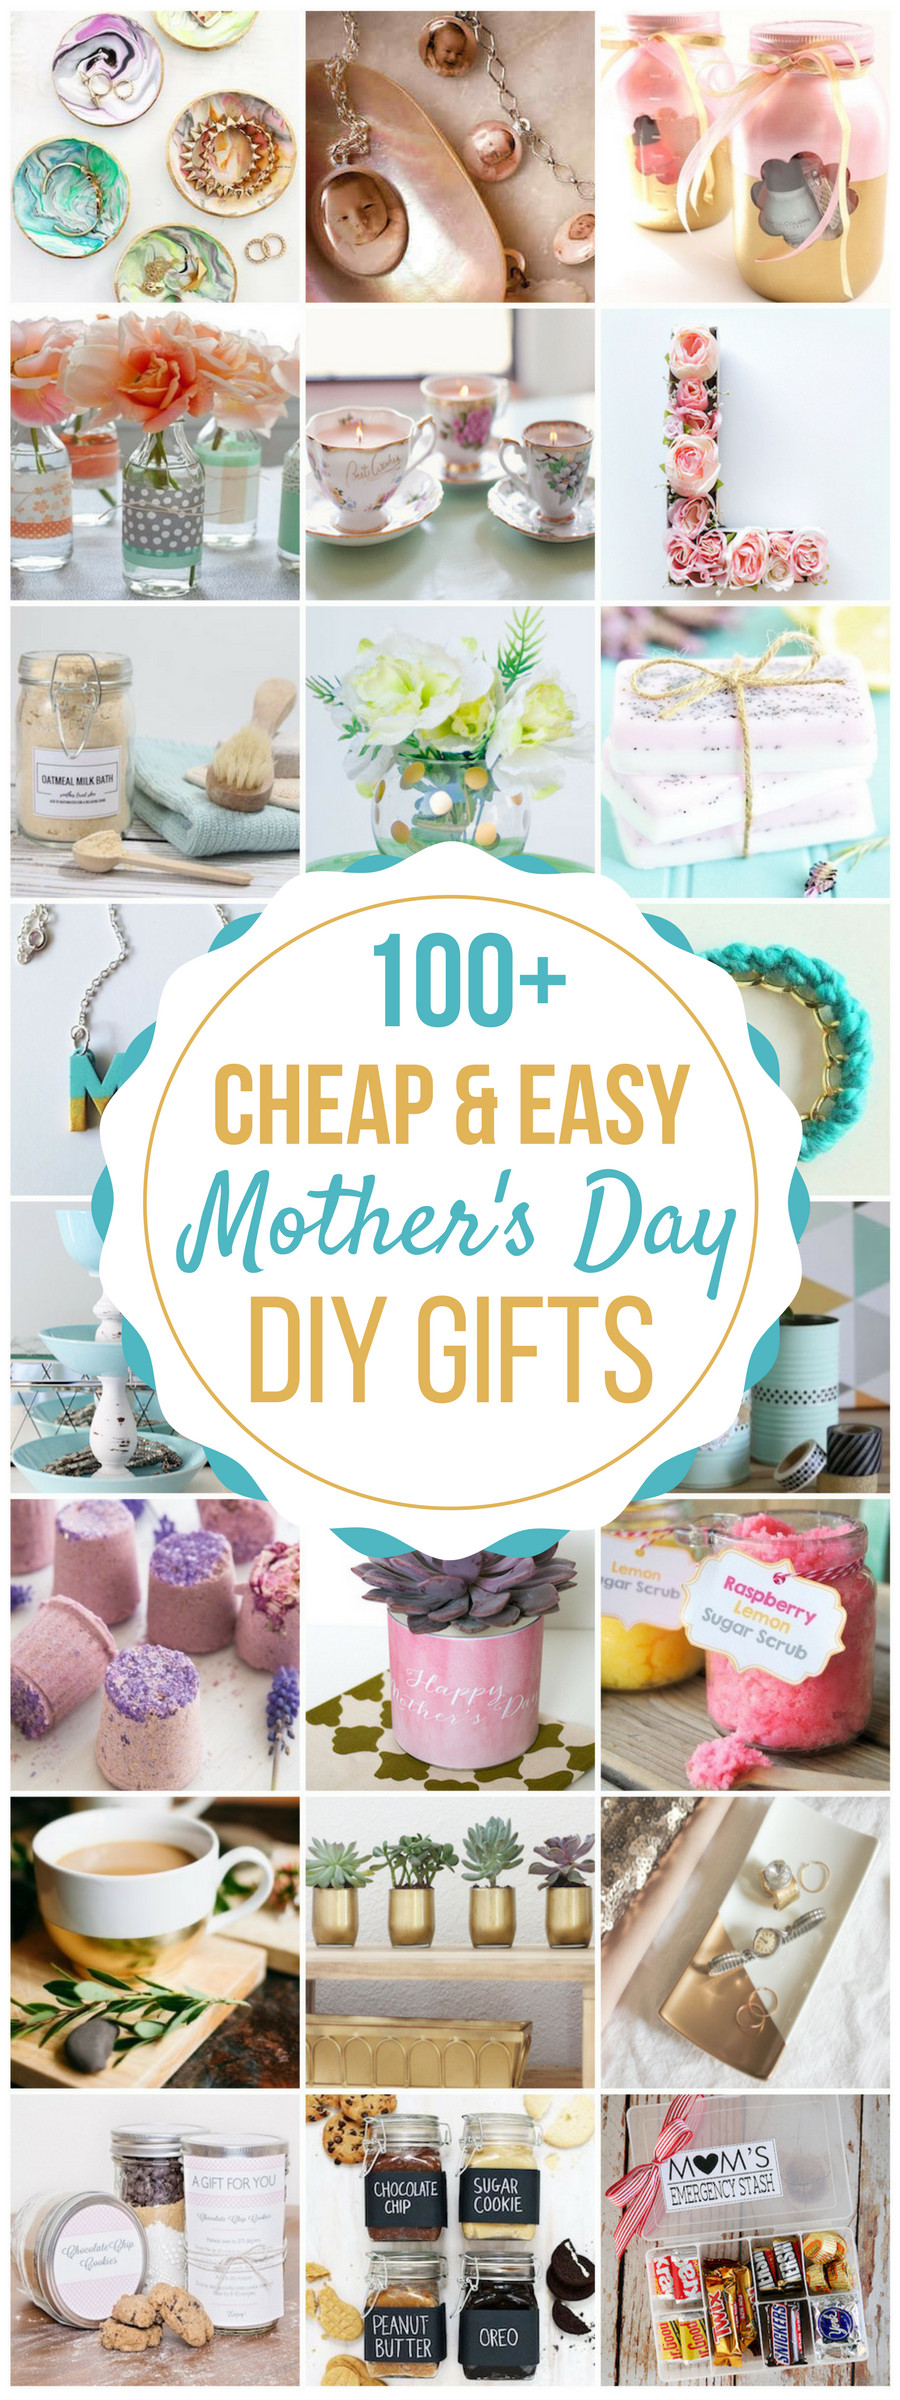 Mother Day Homemade Gift Ideas  100 Cheap & Easy DIY Mother s Day Gifts Prudent Penny